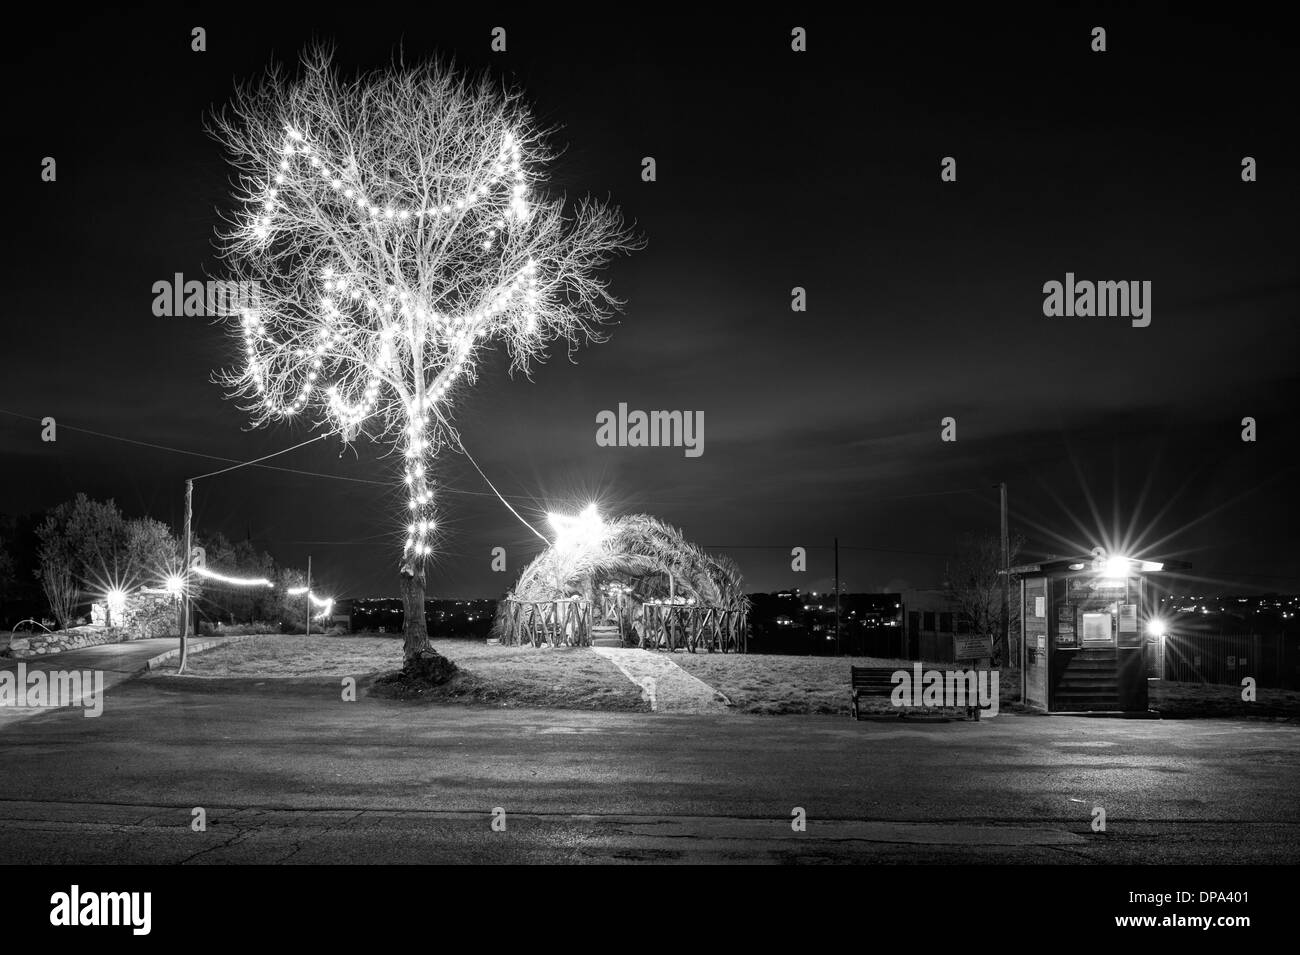 Abruzzo, Italy. Christmas tree and crib - Stock Image